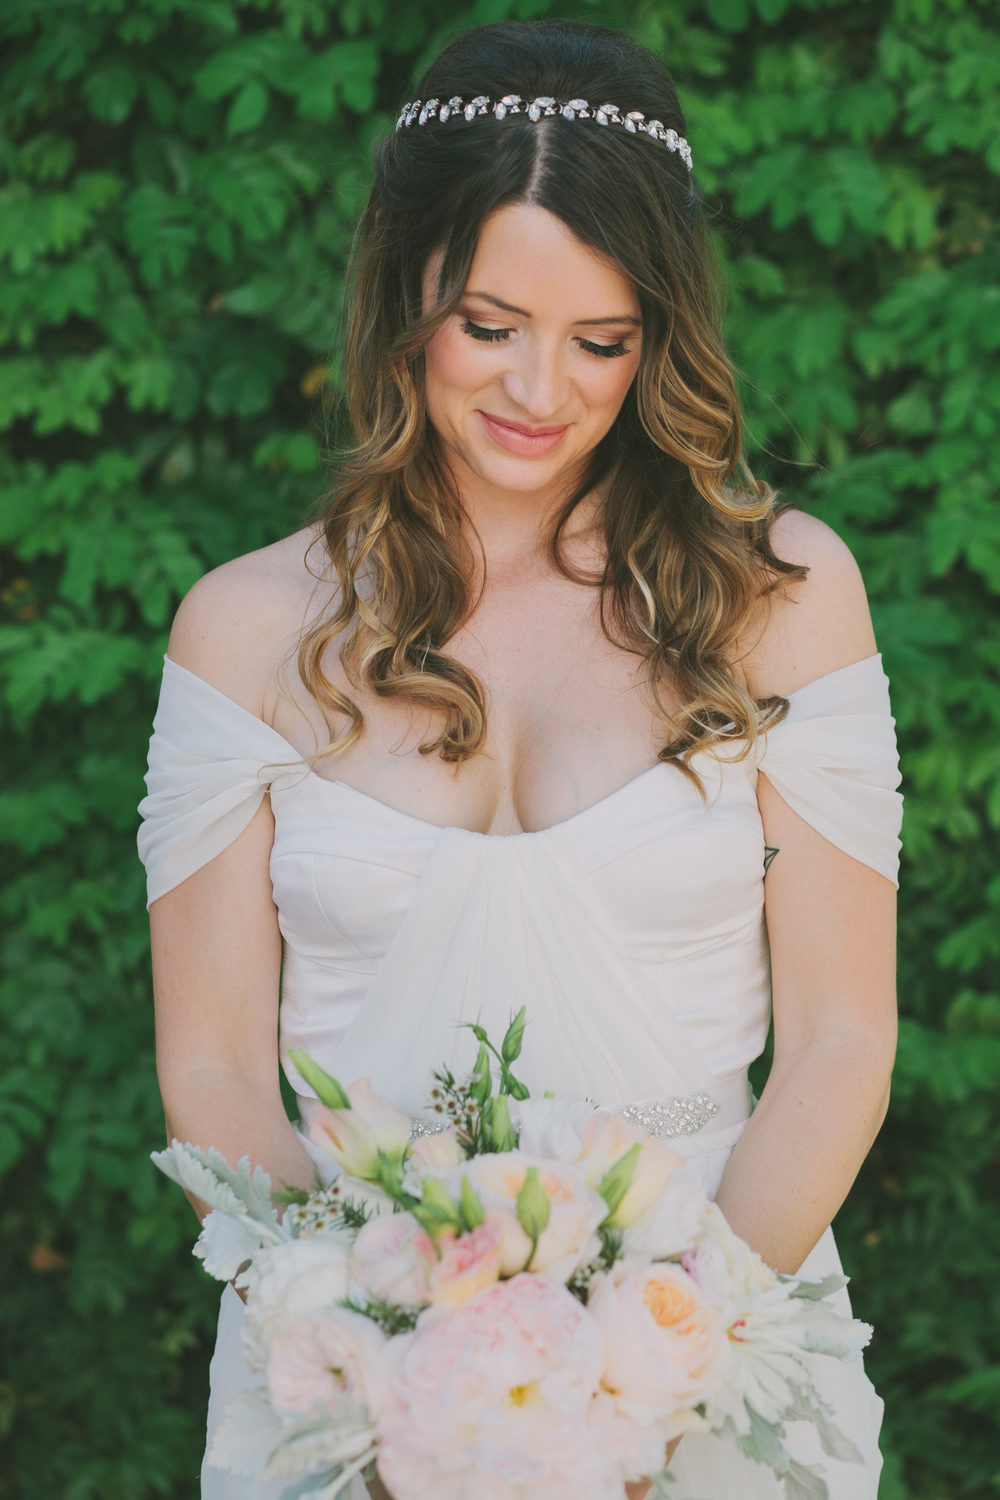 Real Winifred Bean bride Jenni wearing Tulipe vintage-inspired wedding dress